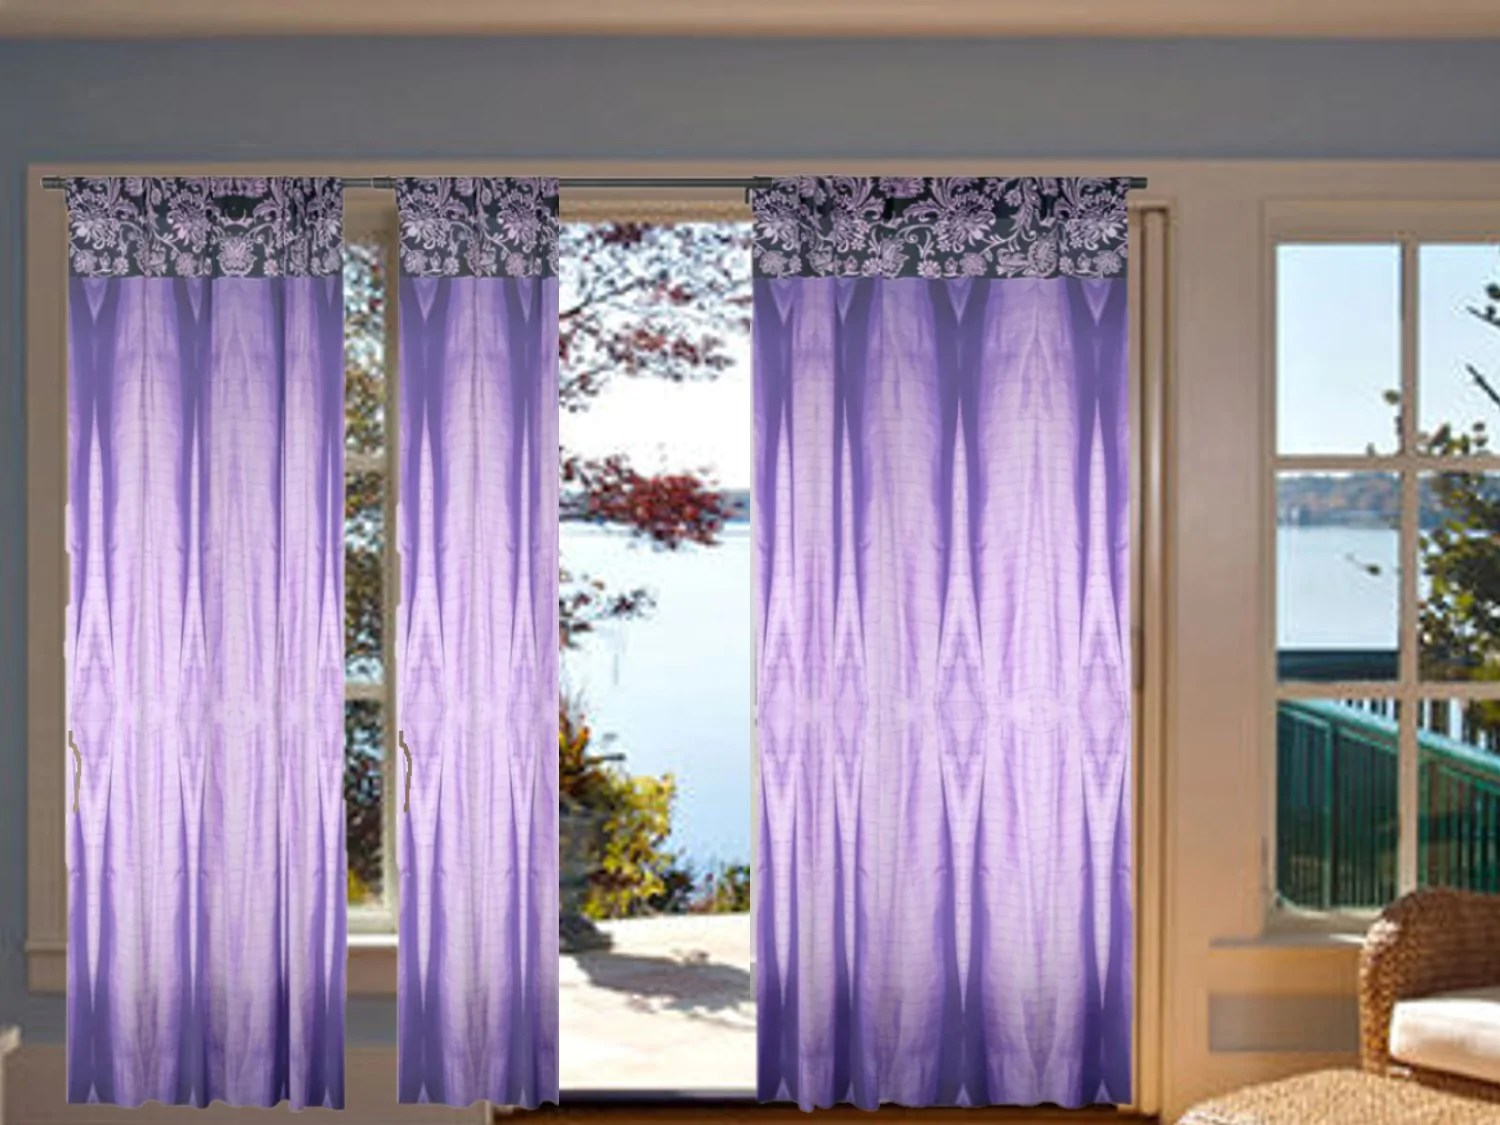 curtain panels lavender bedroom drapes indian curtains